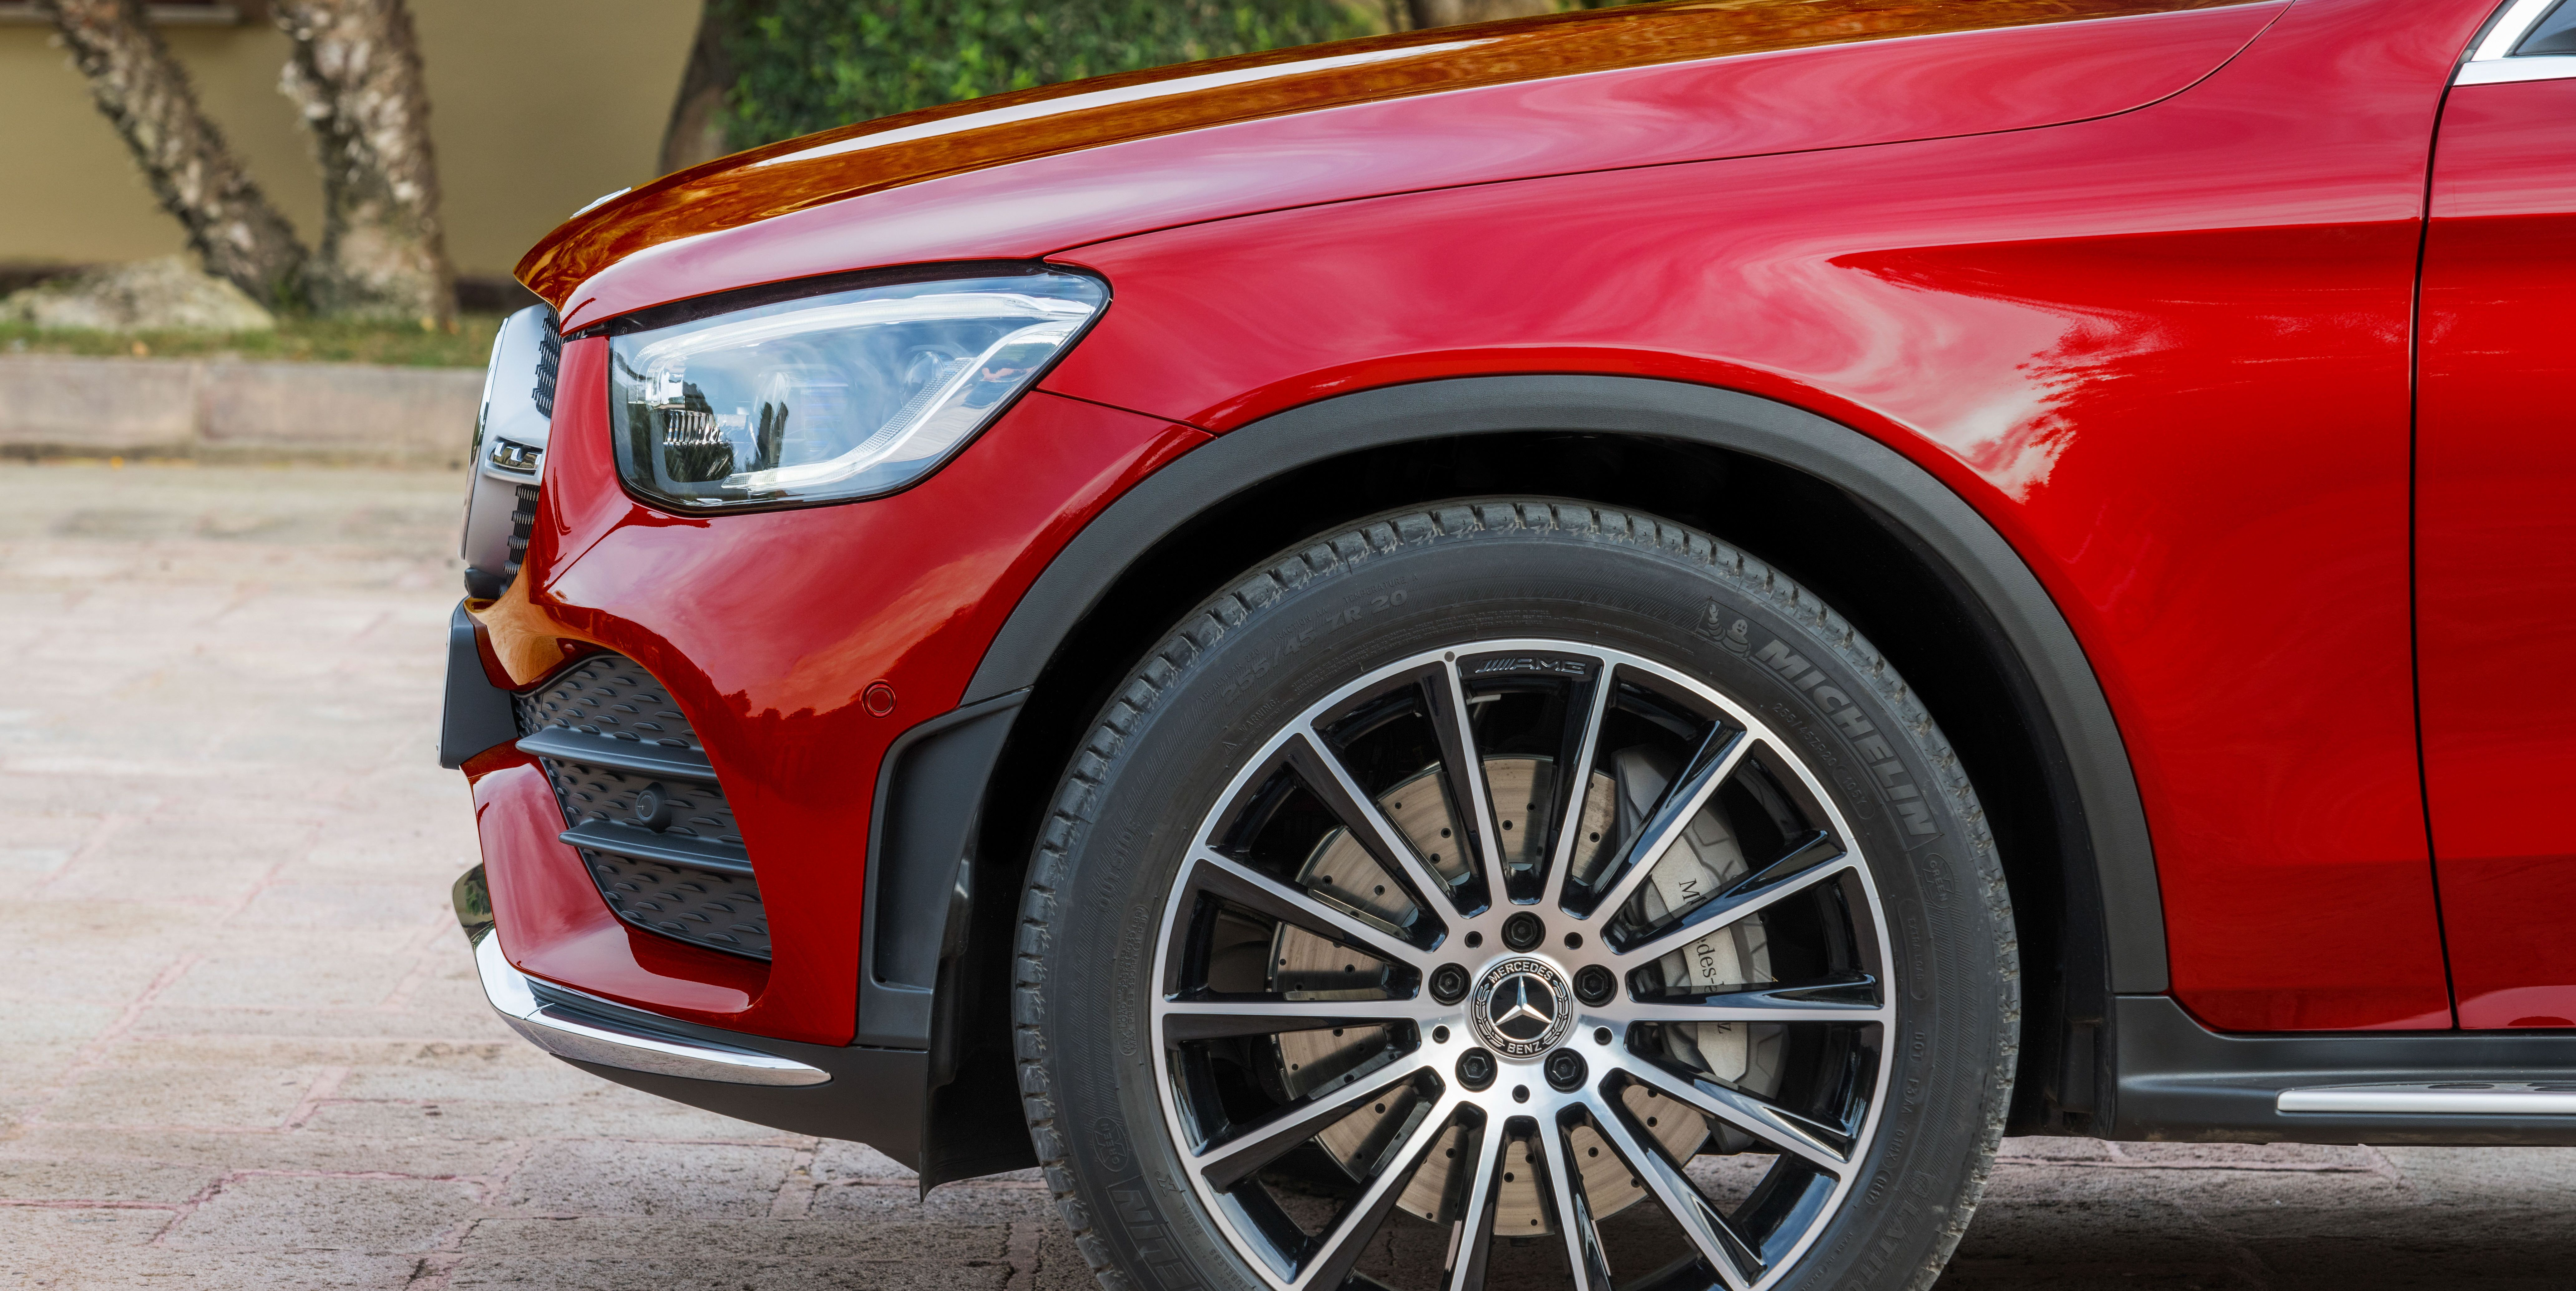 See Photos of the 2020 Mercedes-Benz GLC300 Coupe